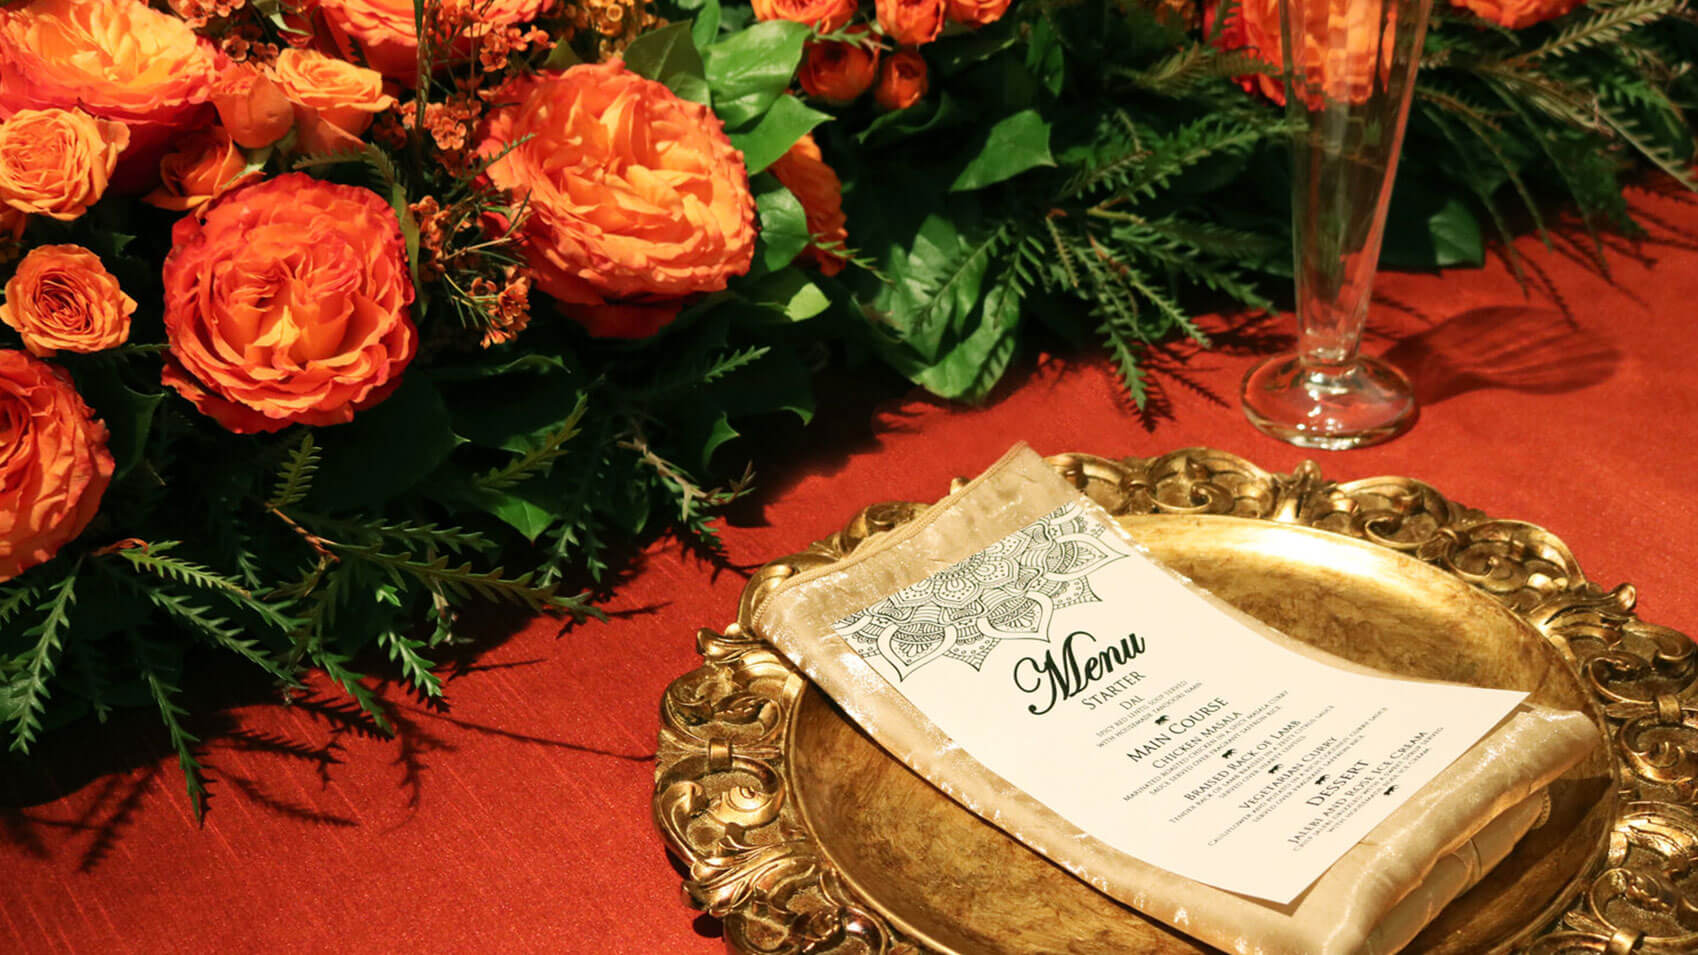 Events By Artful Decor | Cherry Tree Inn | The Groundhog Day House | IL